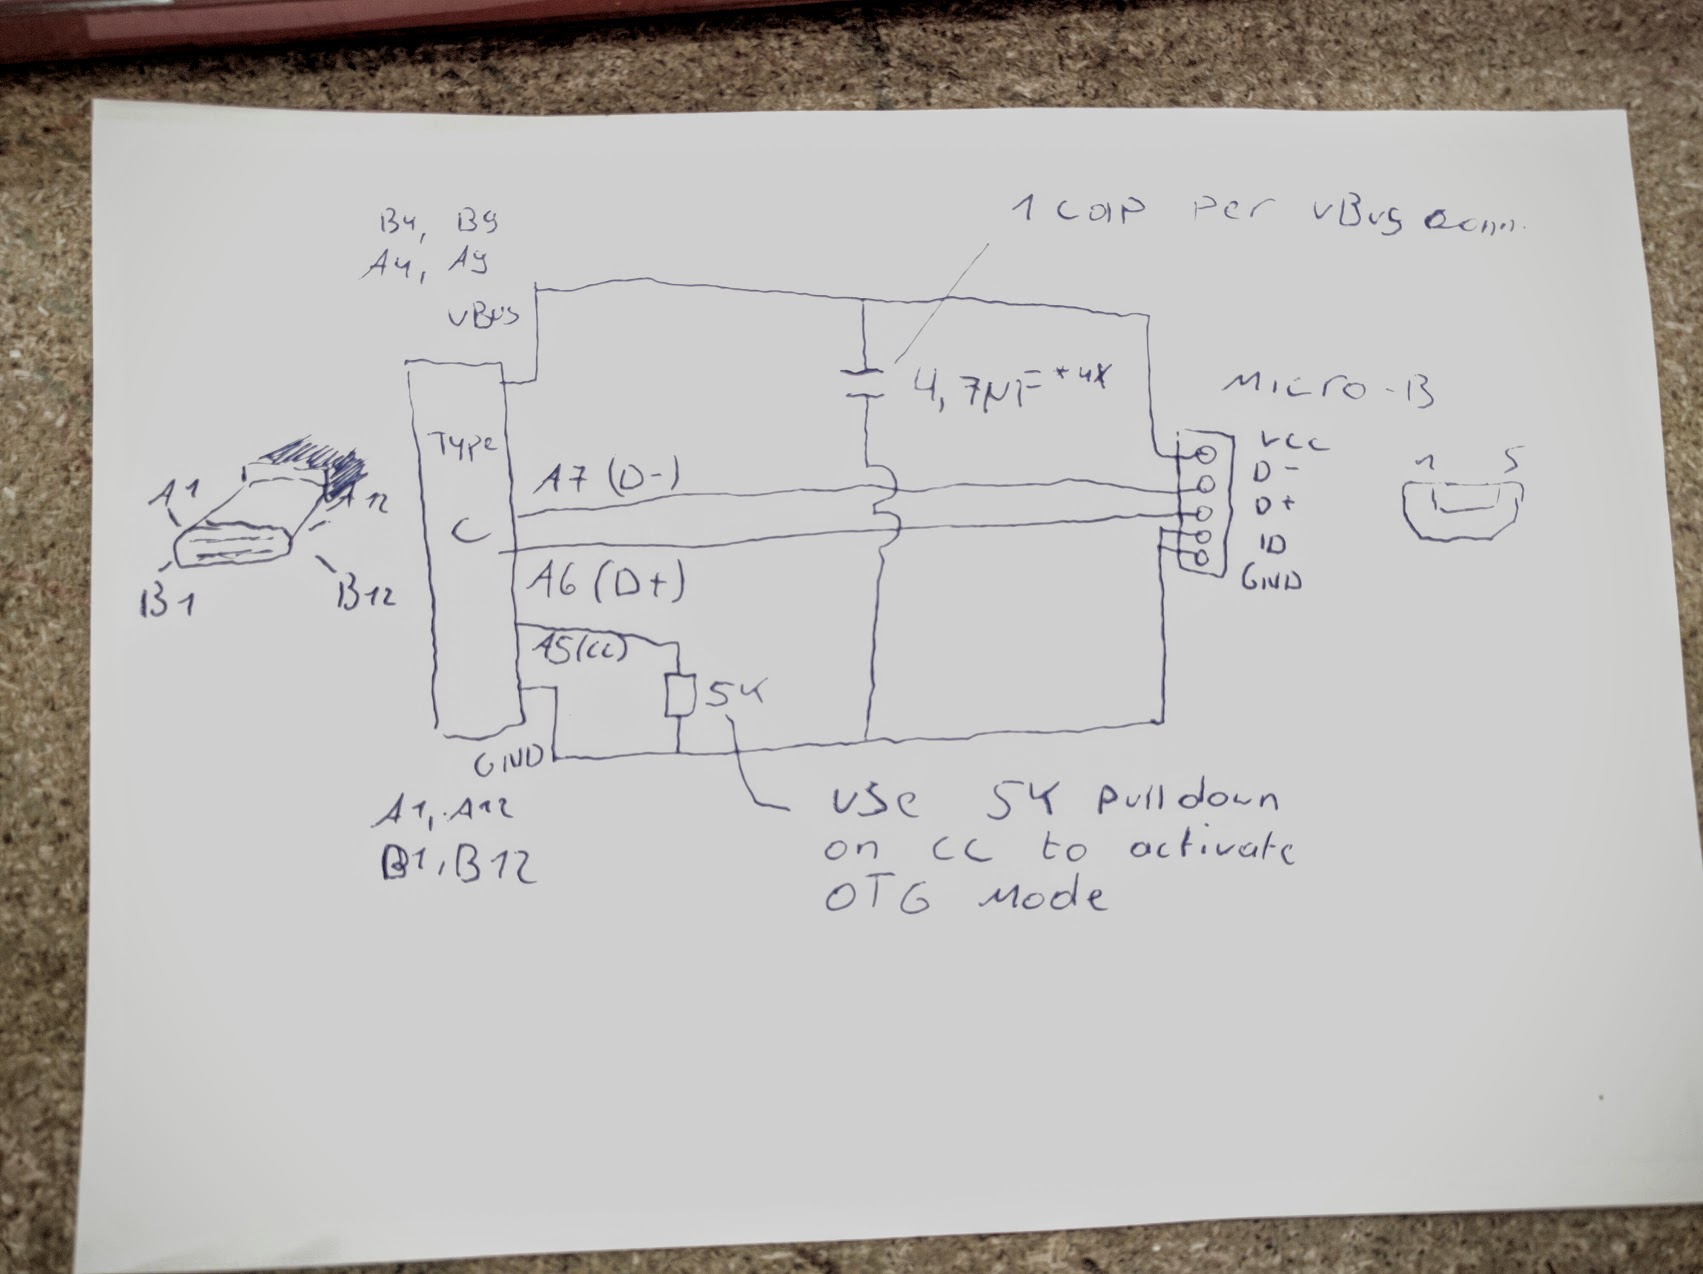 Usb Type C Mod Time! - Micro Usb To Usb C Wiring Diagram